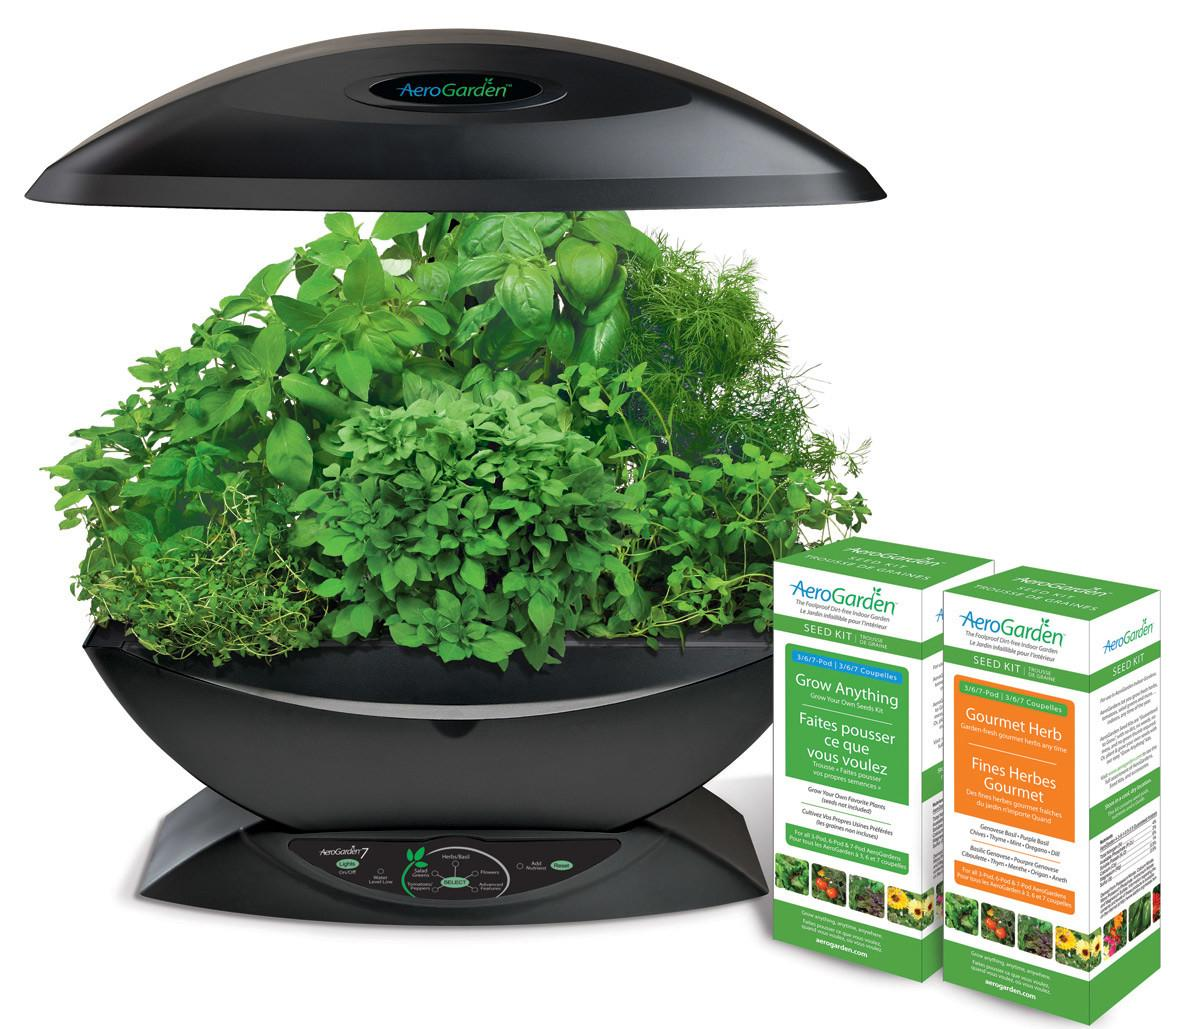 Aerogarden Gourmet Herb Grow Anything Kit Hydroponic